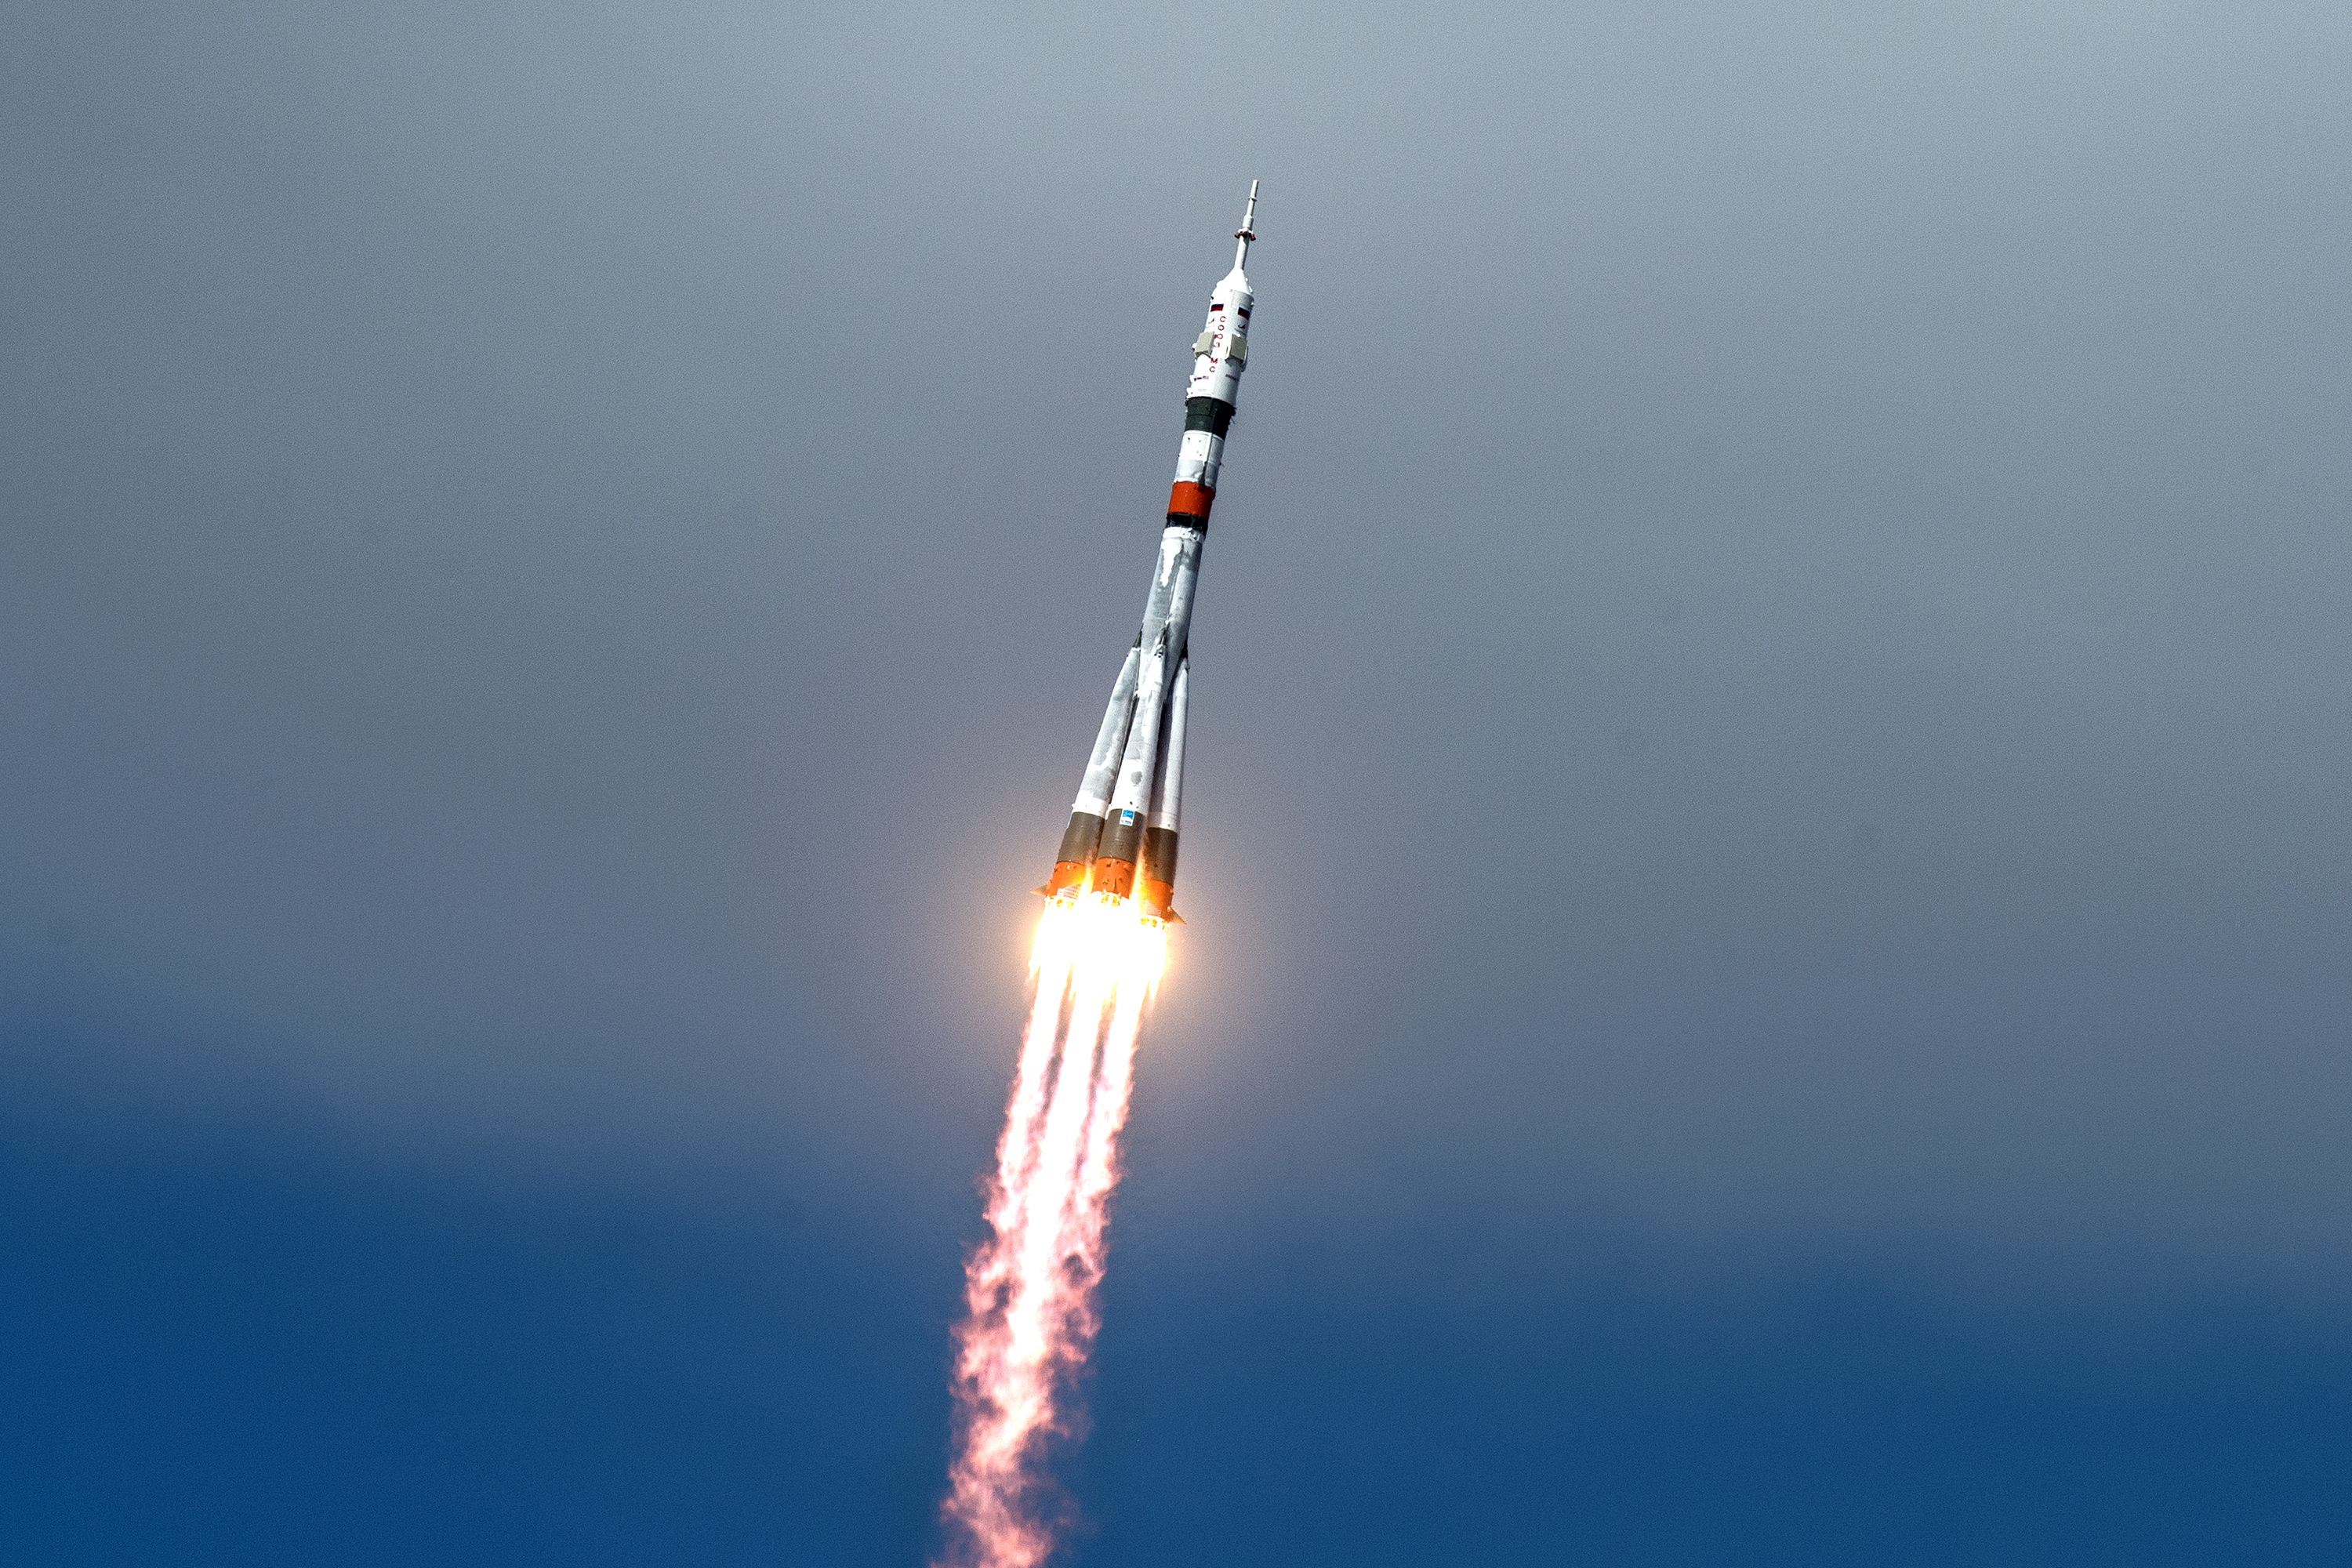 Launching the Next Crew to the Space Station